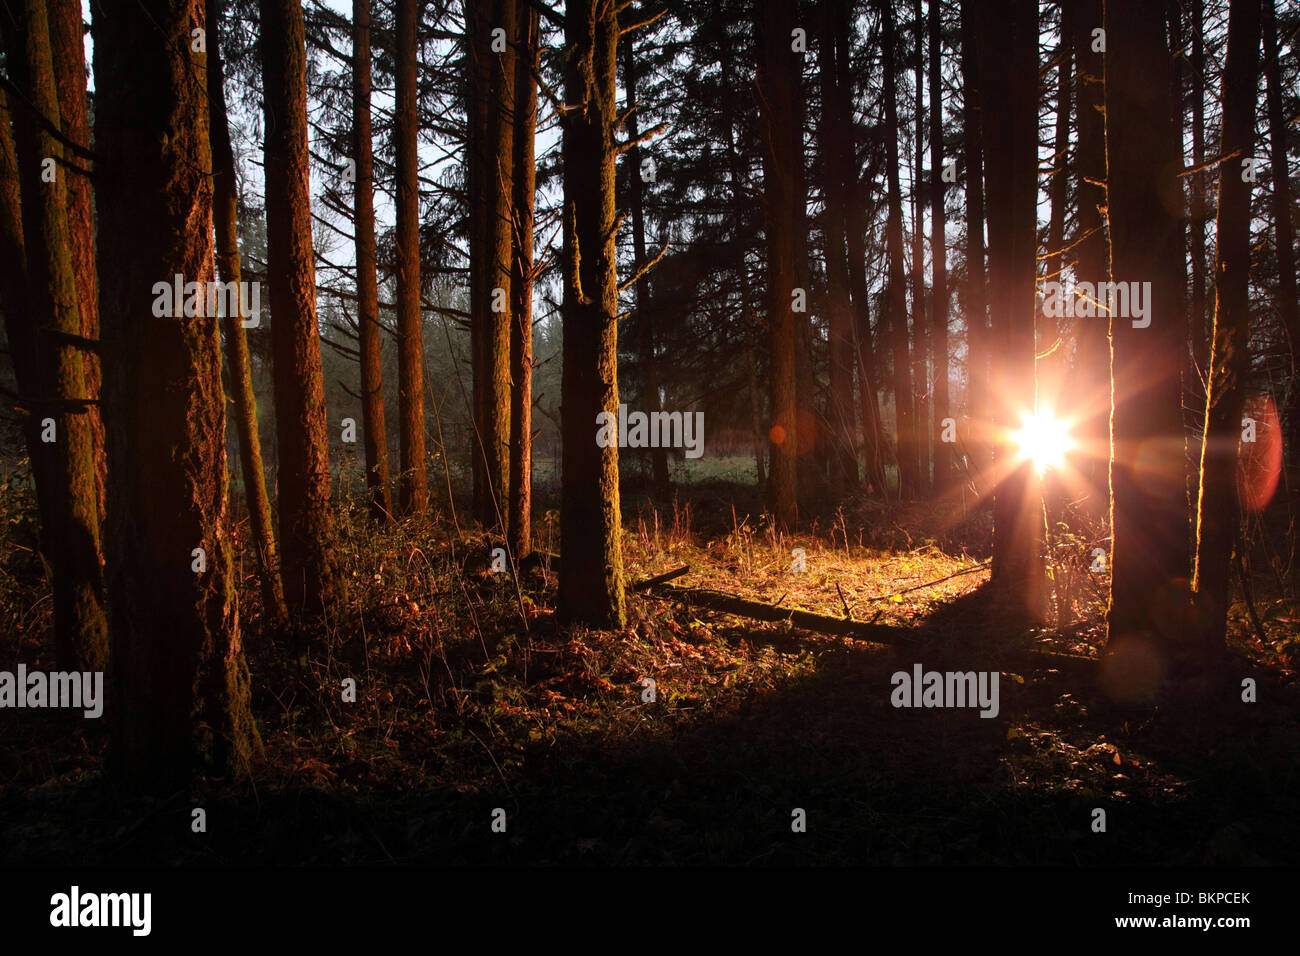 Bright light shining in forest - Stock Image